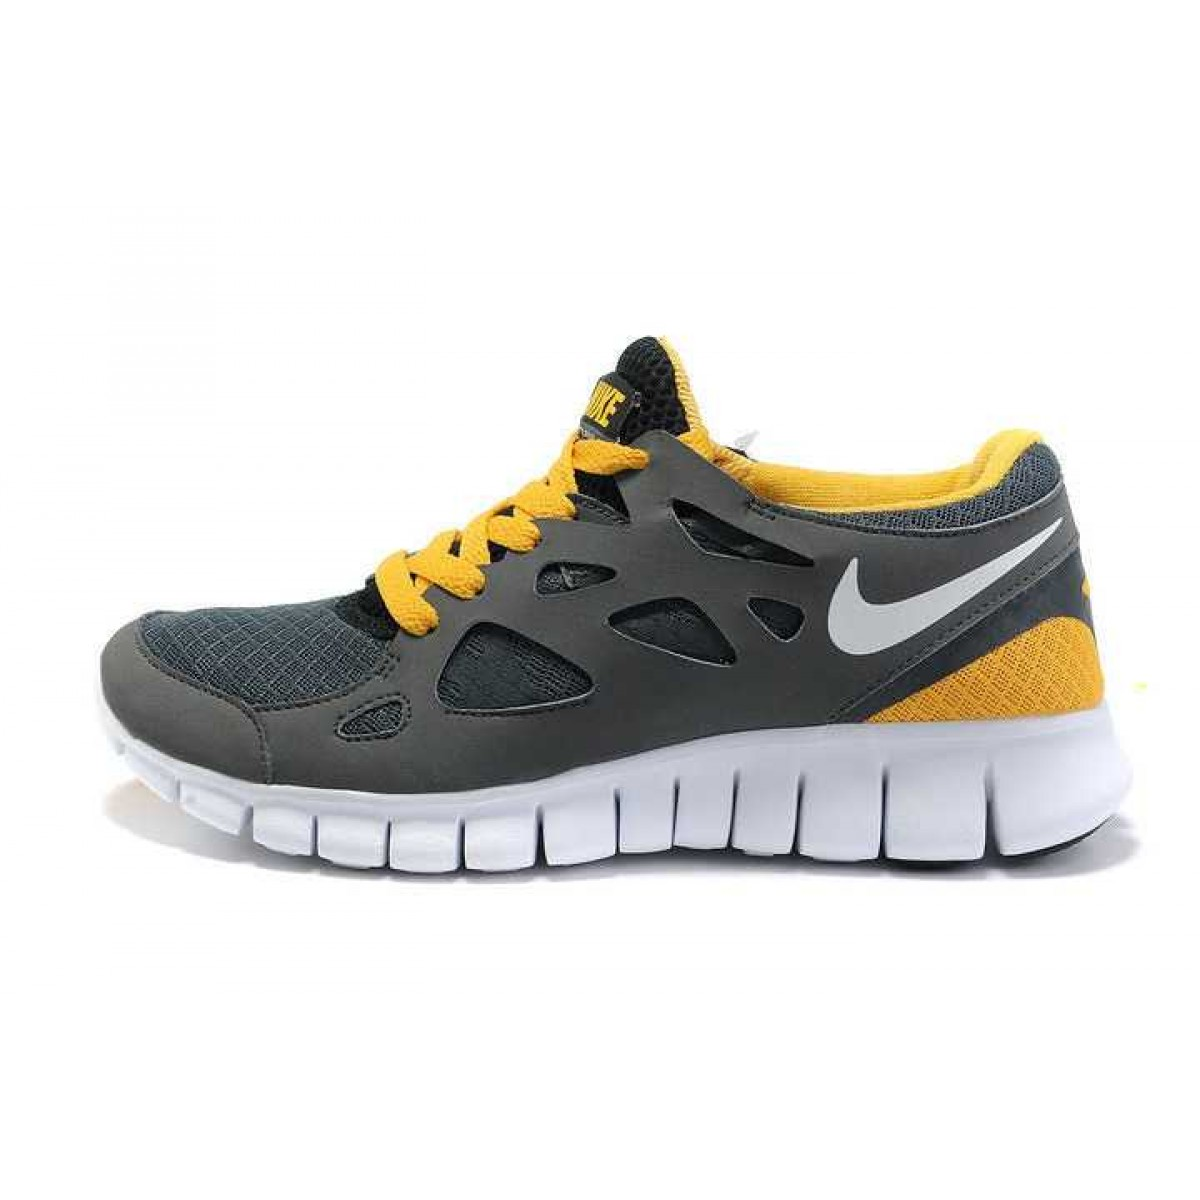 competitive price 5a55a d990c Nike Free Run 2 Homme Chaussures Gris Jaune,nike freerun,Pas Cher soldes  France